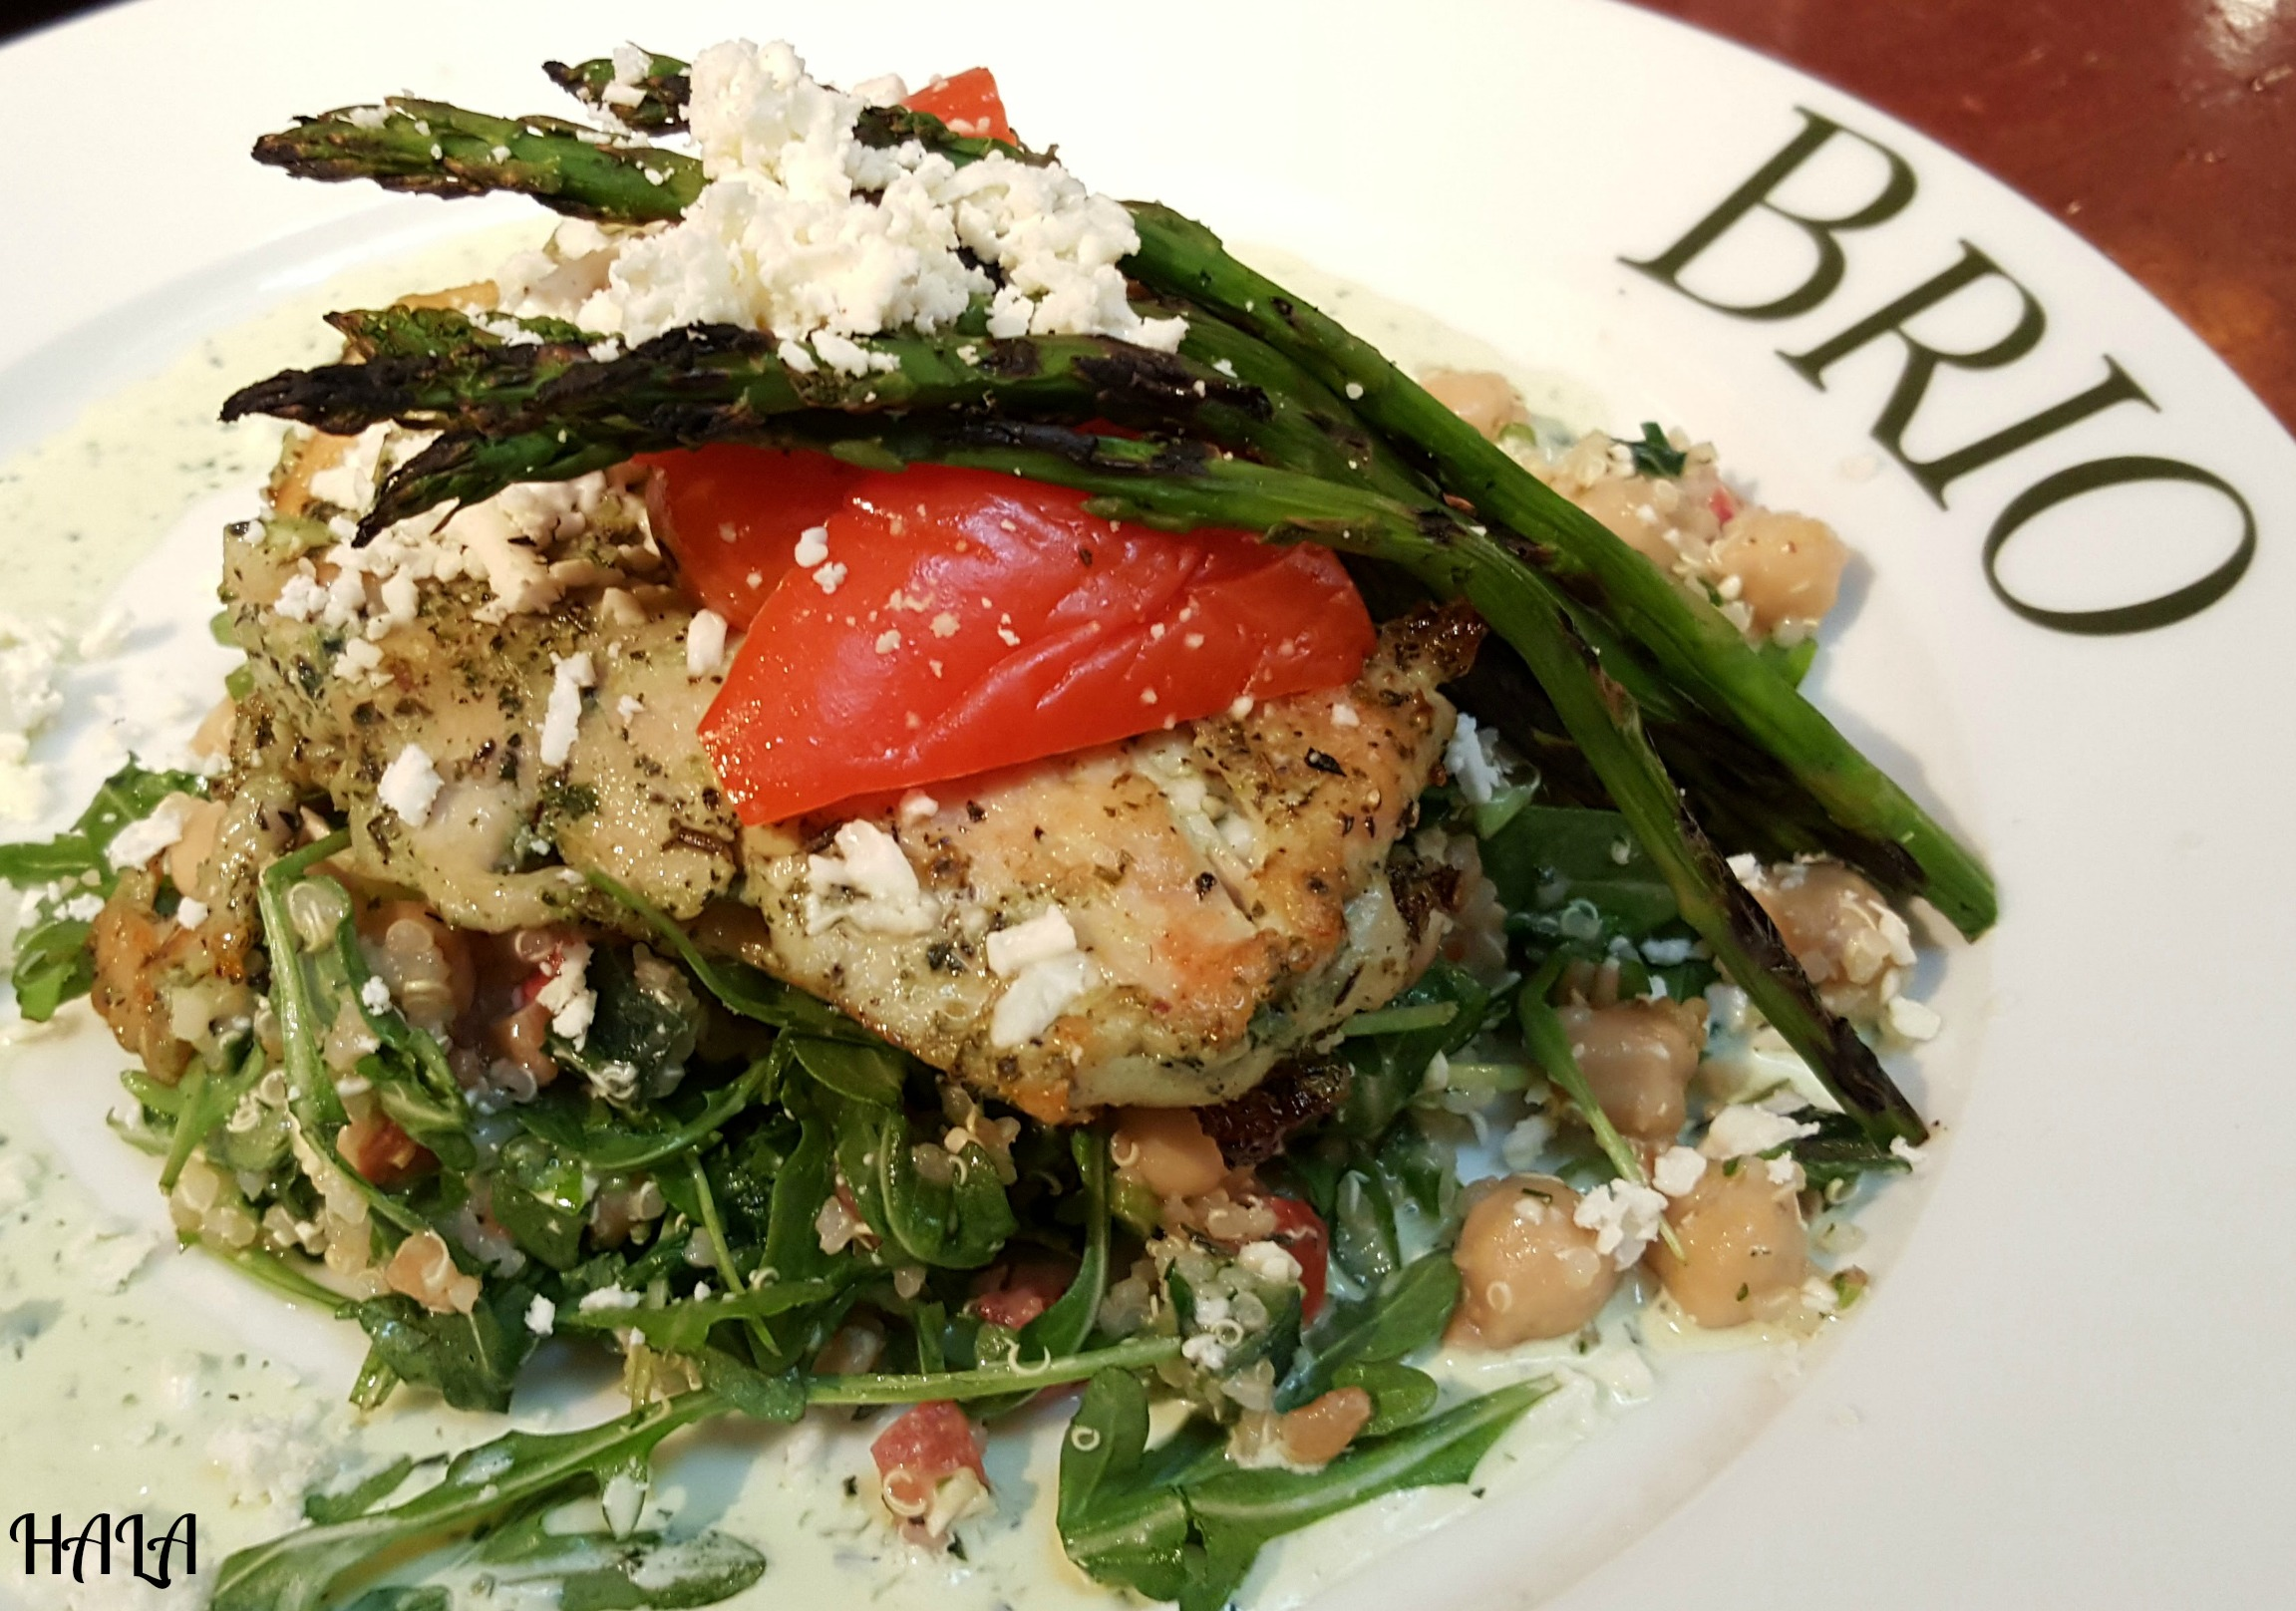 BRIO Tuscan Grille Introduces 'A Tale of Two Risottos ...